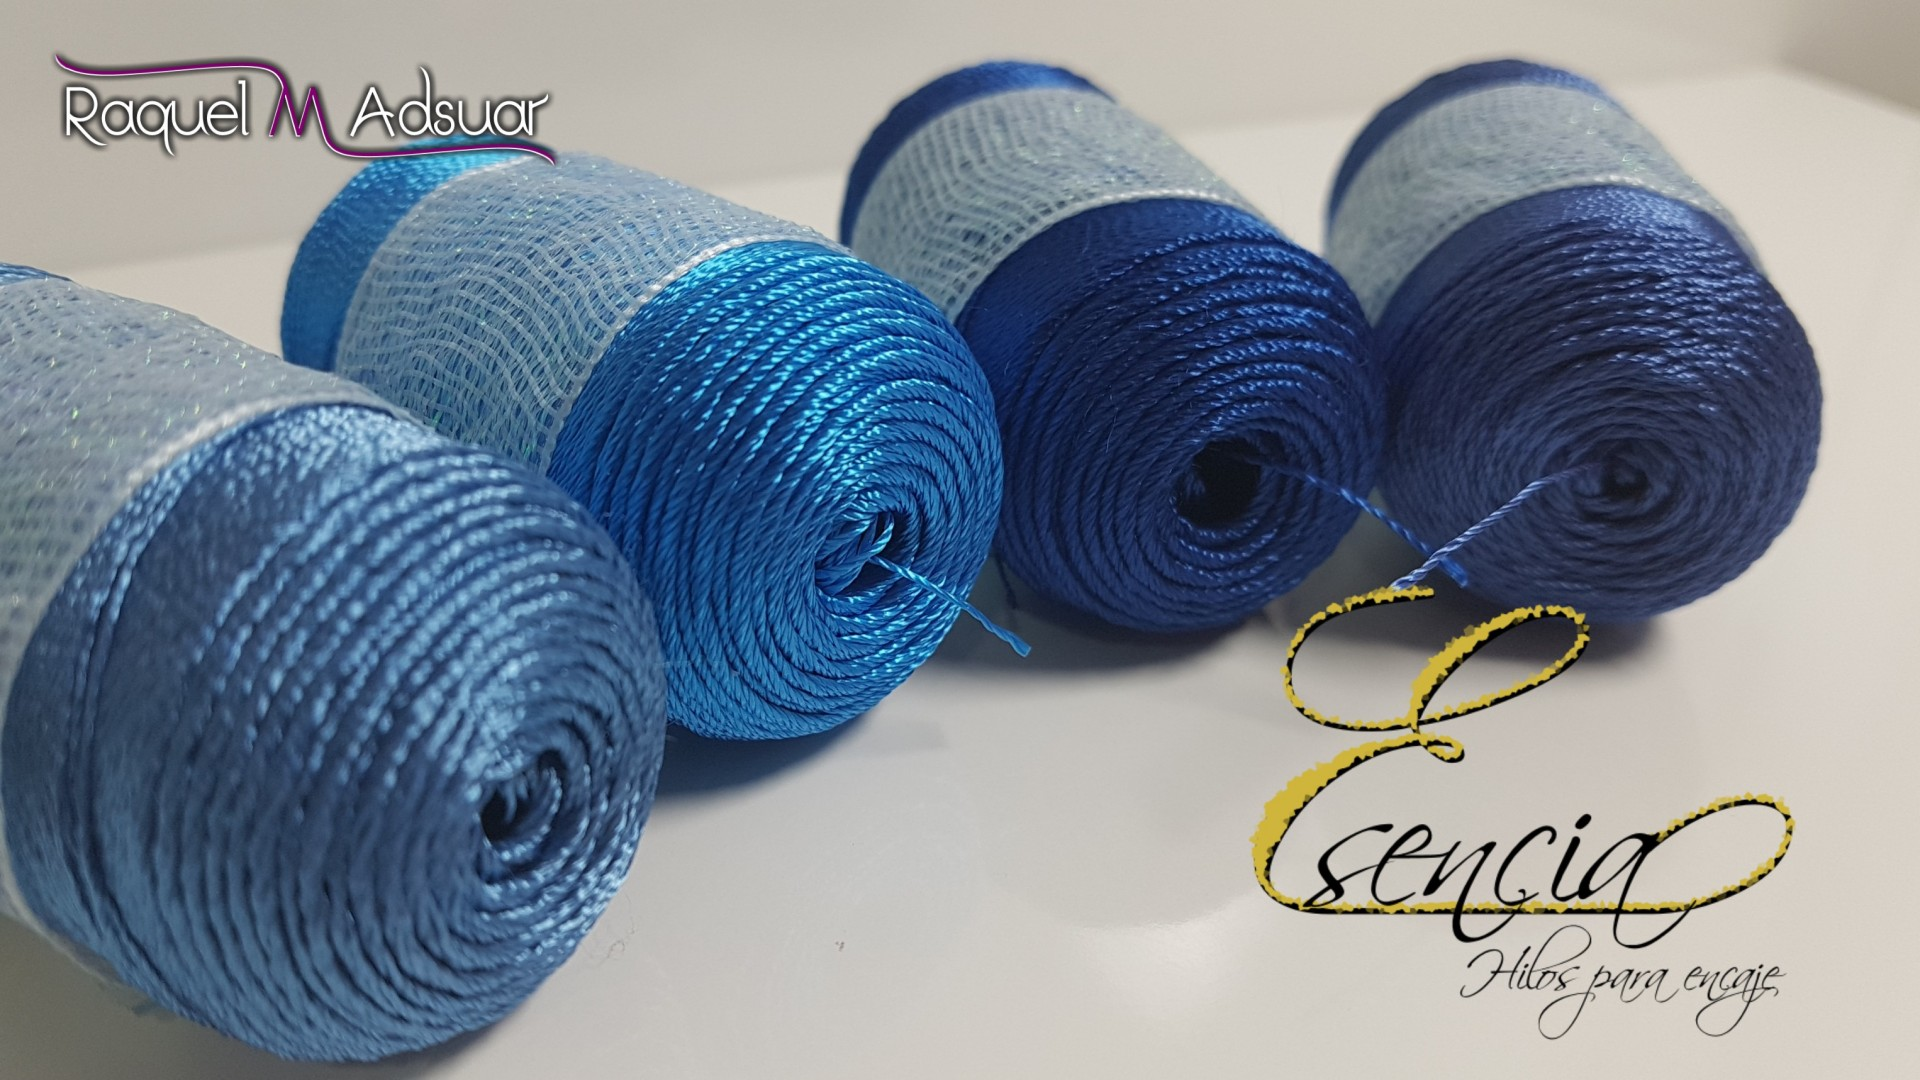 Gama de azules awesome sherwin argentina on twitter gama for Gama de colores azules